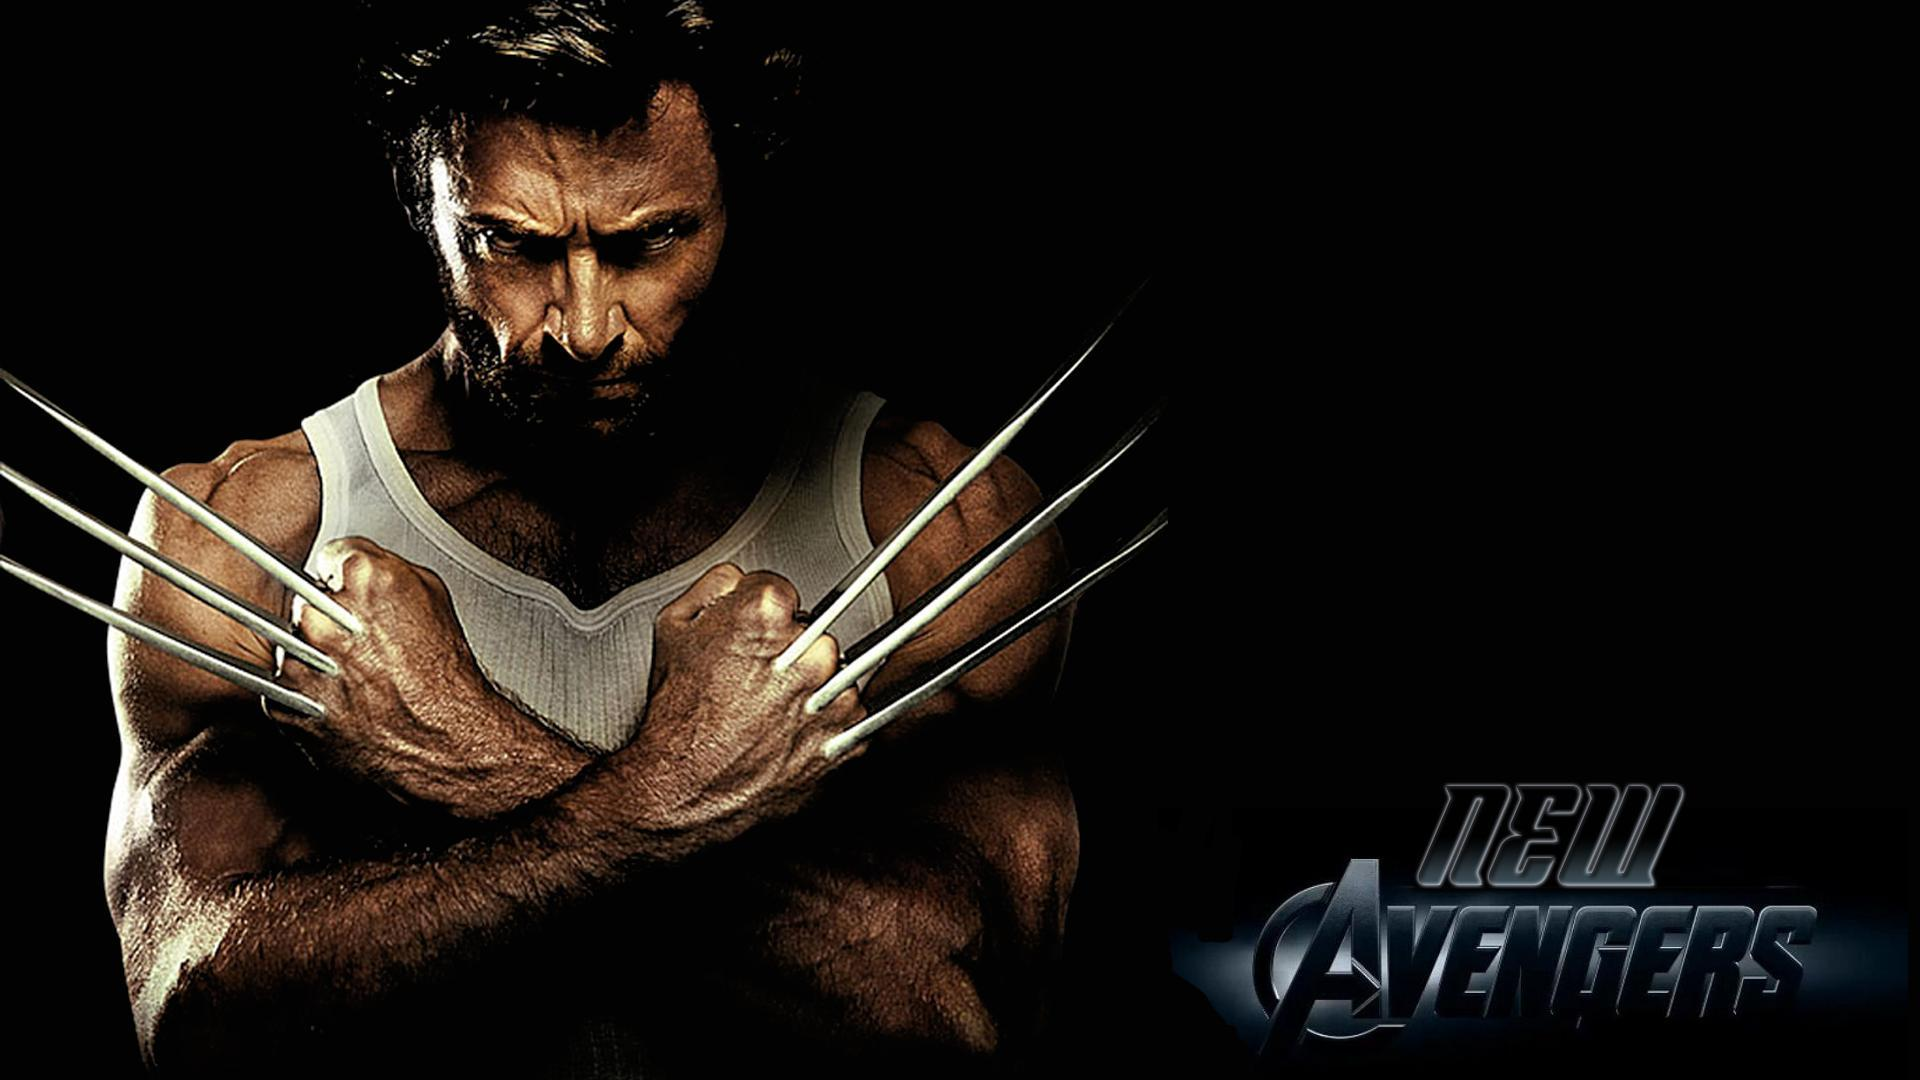 New Avengers - Wolverine HD Wallpaper » FullHDWpp - Full HD ...